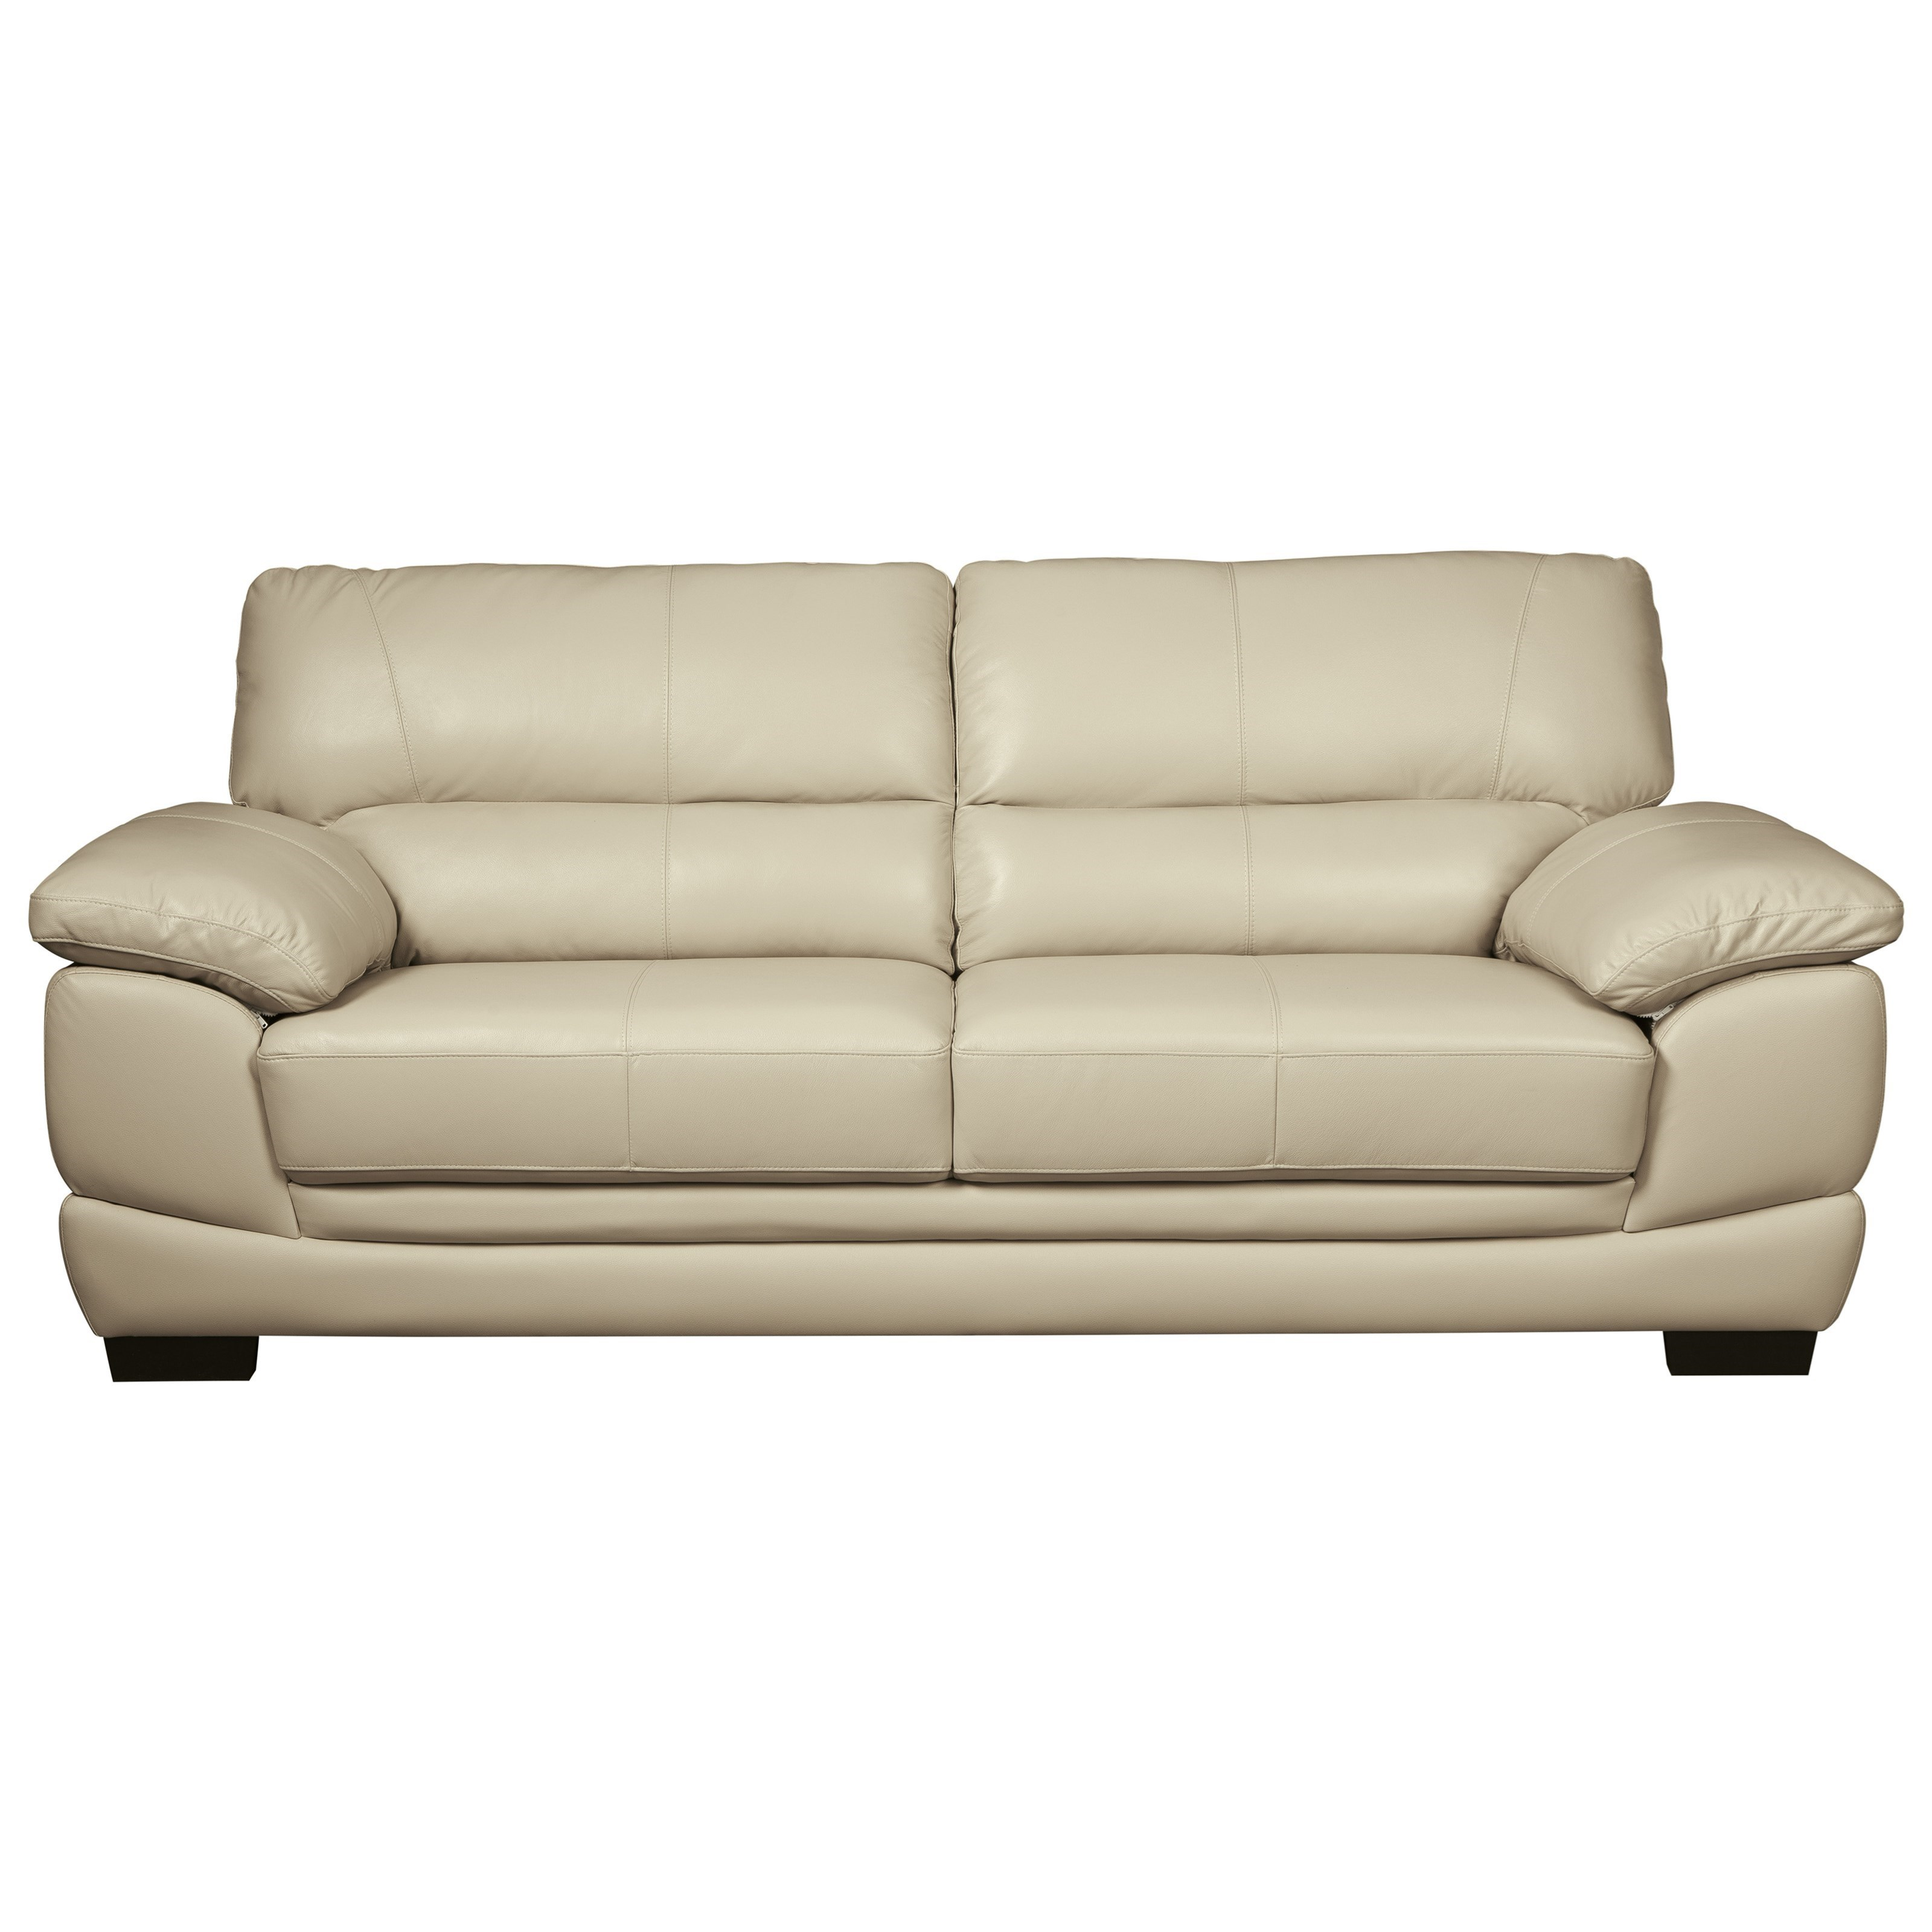 Signature Design by Ashley Fontenot Sofa - Item Number: 1220338